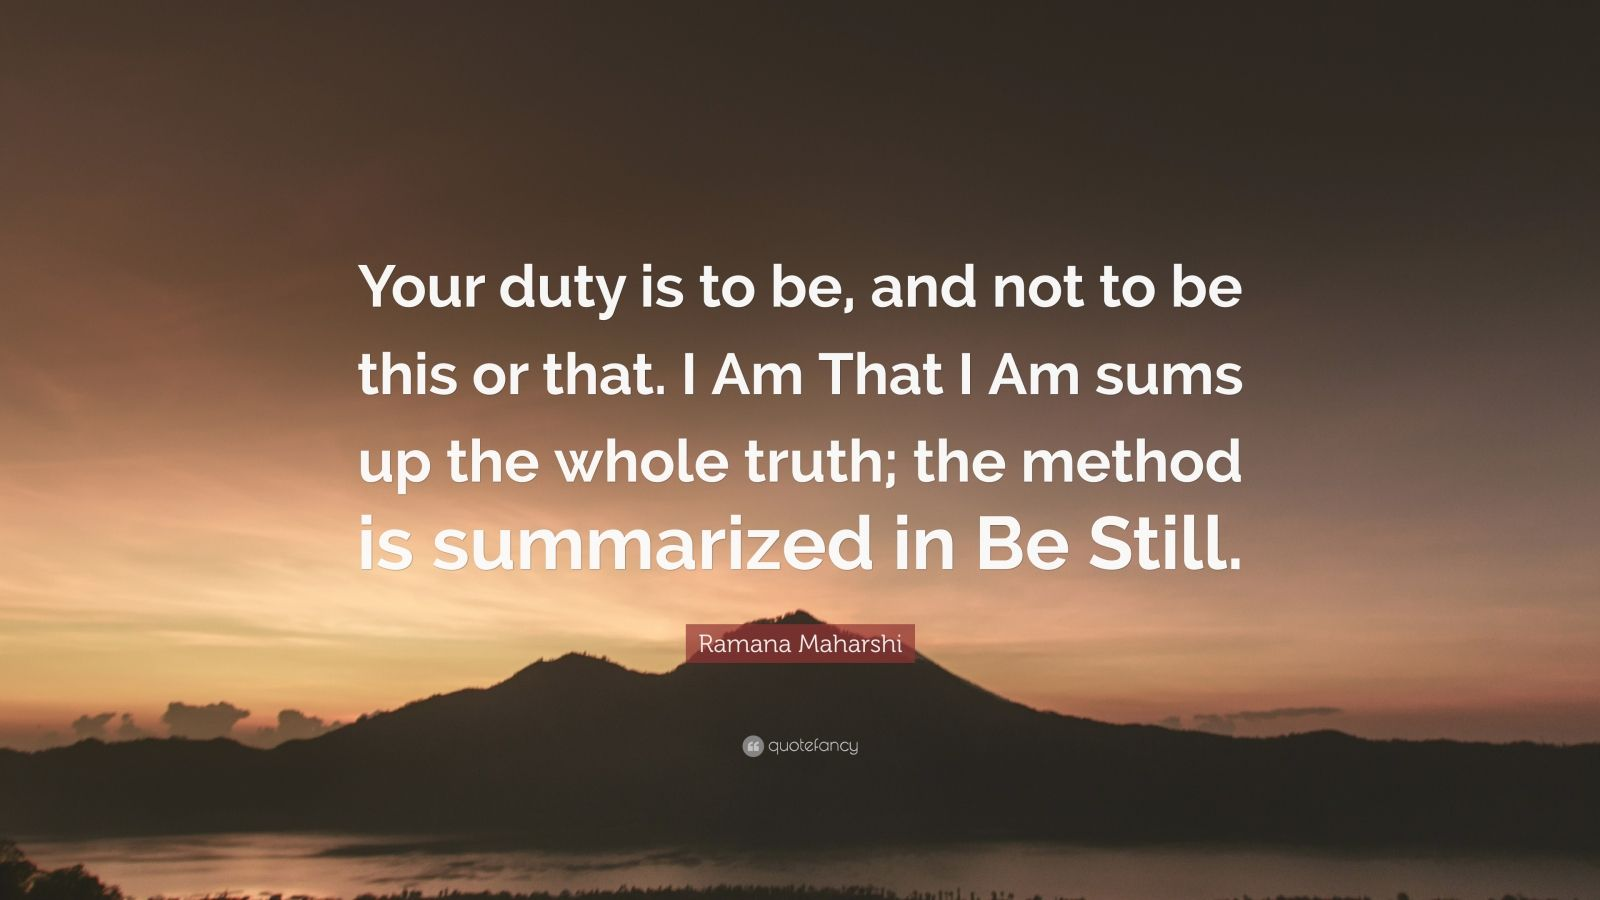 """Ramana Maharshi Quote: """"Your duty is to be, and not to be this or that. I Am That I Am sums up the whole truth; the method is summarized in Be Still."""""""